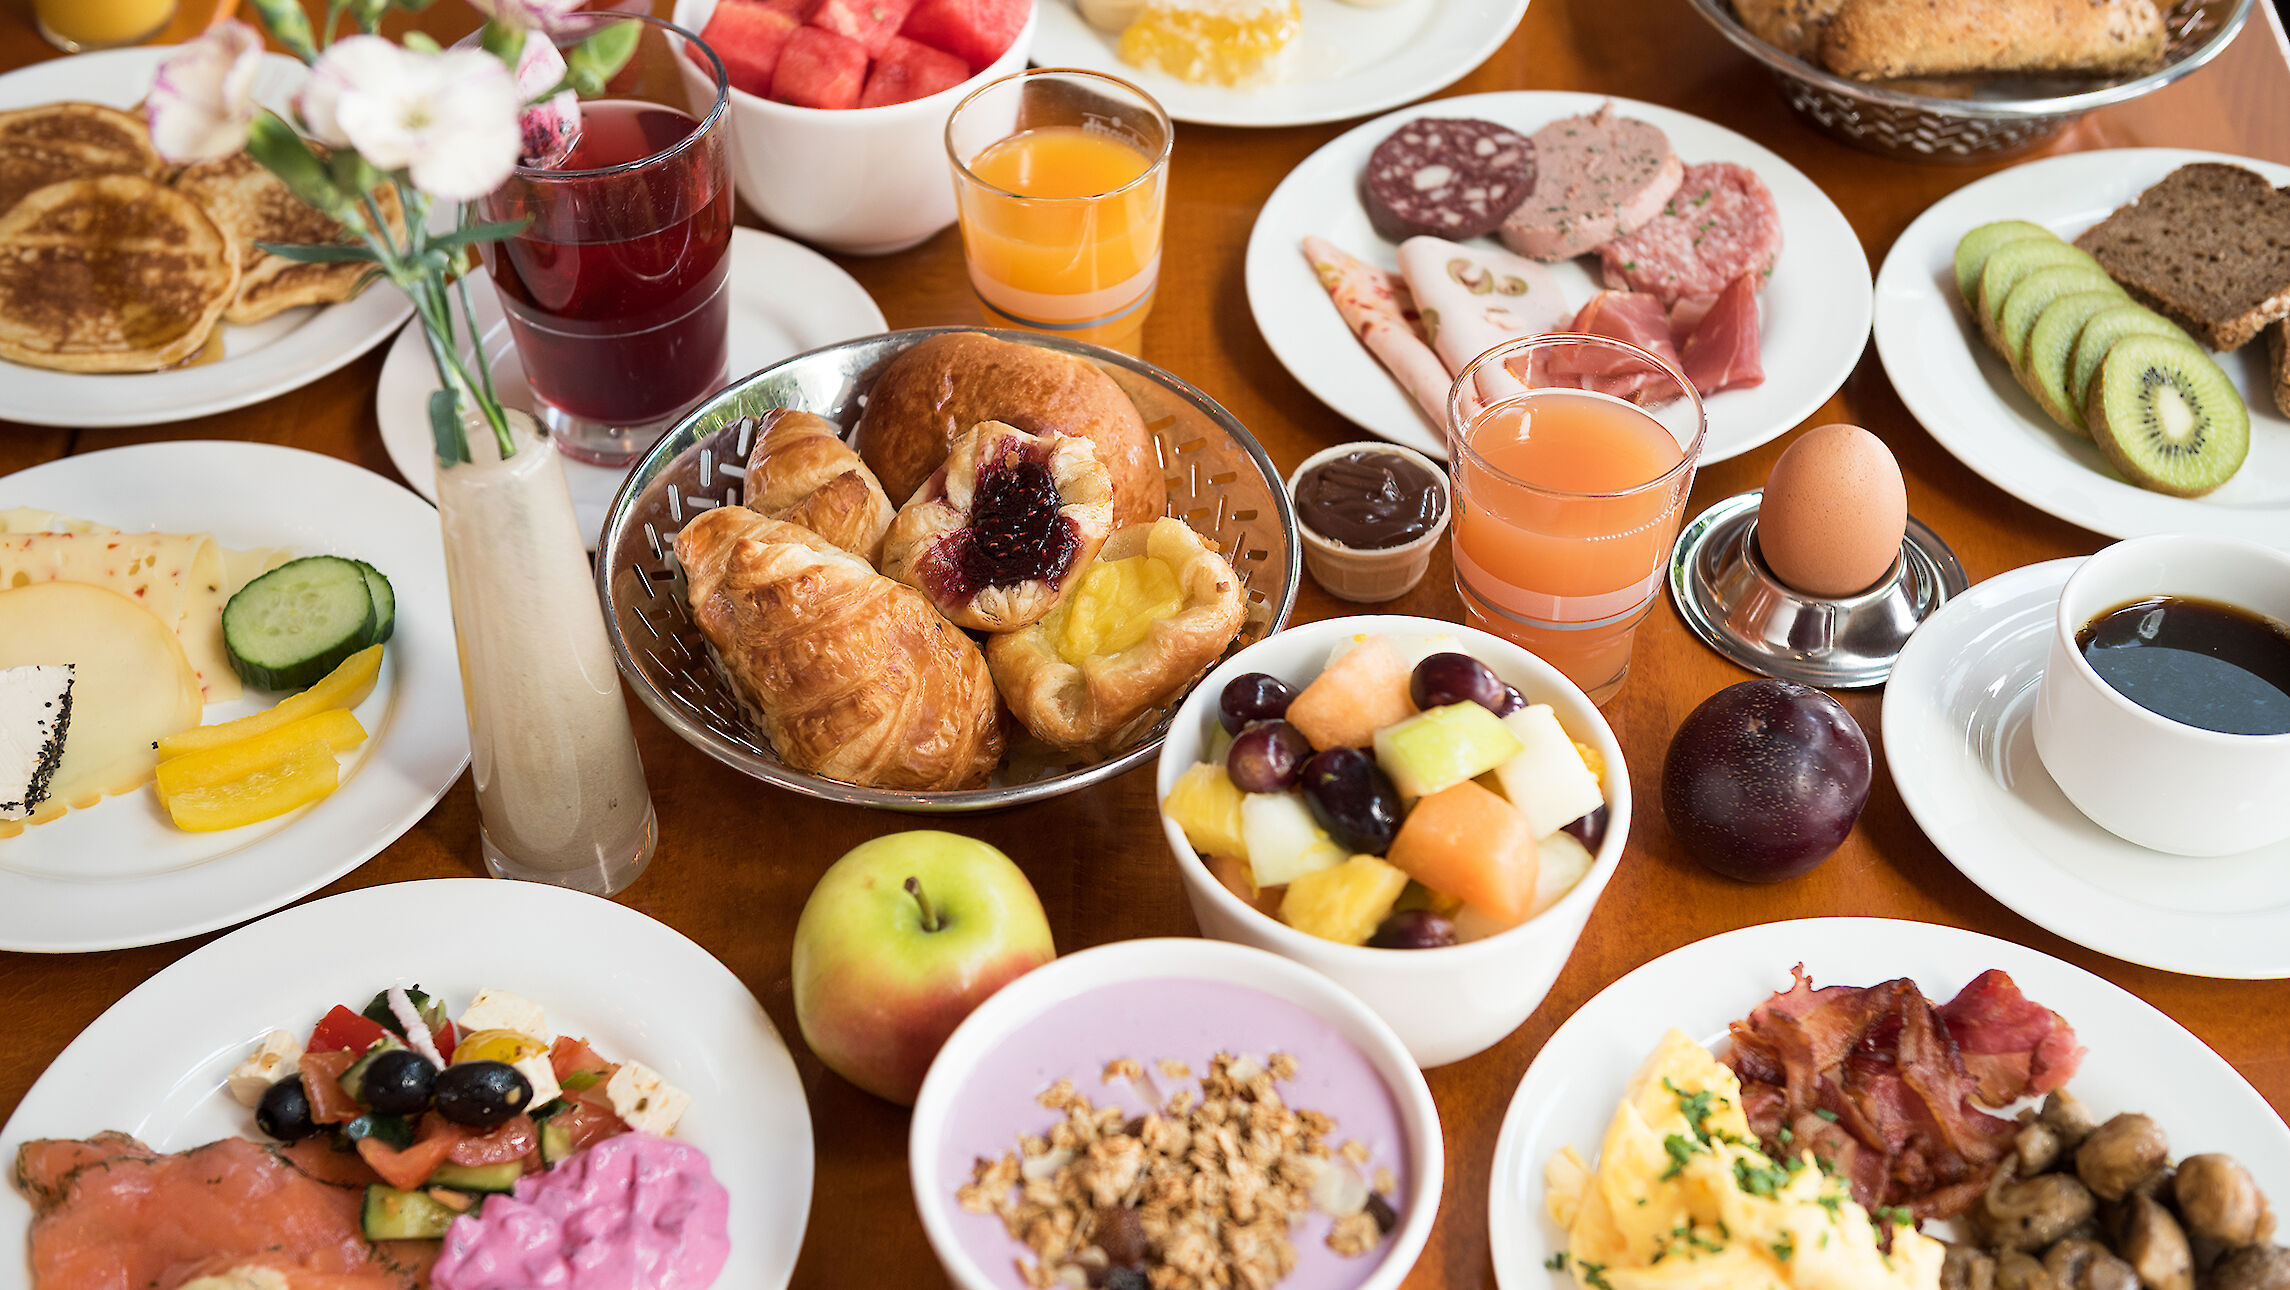 A selection from the breakfast menu at the Restaurant Port Hotel Hafen Hamburg